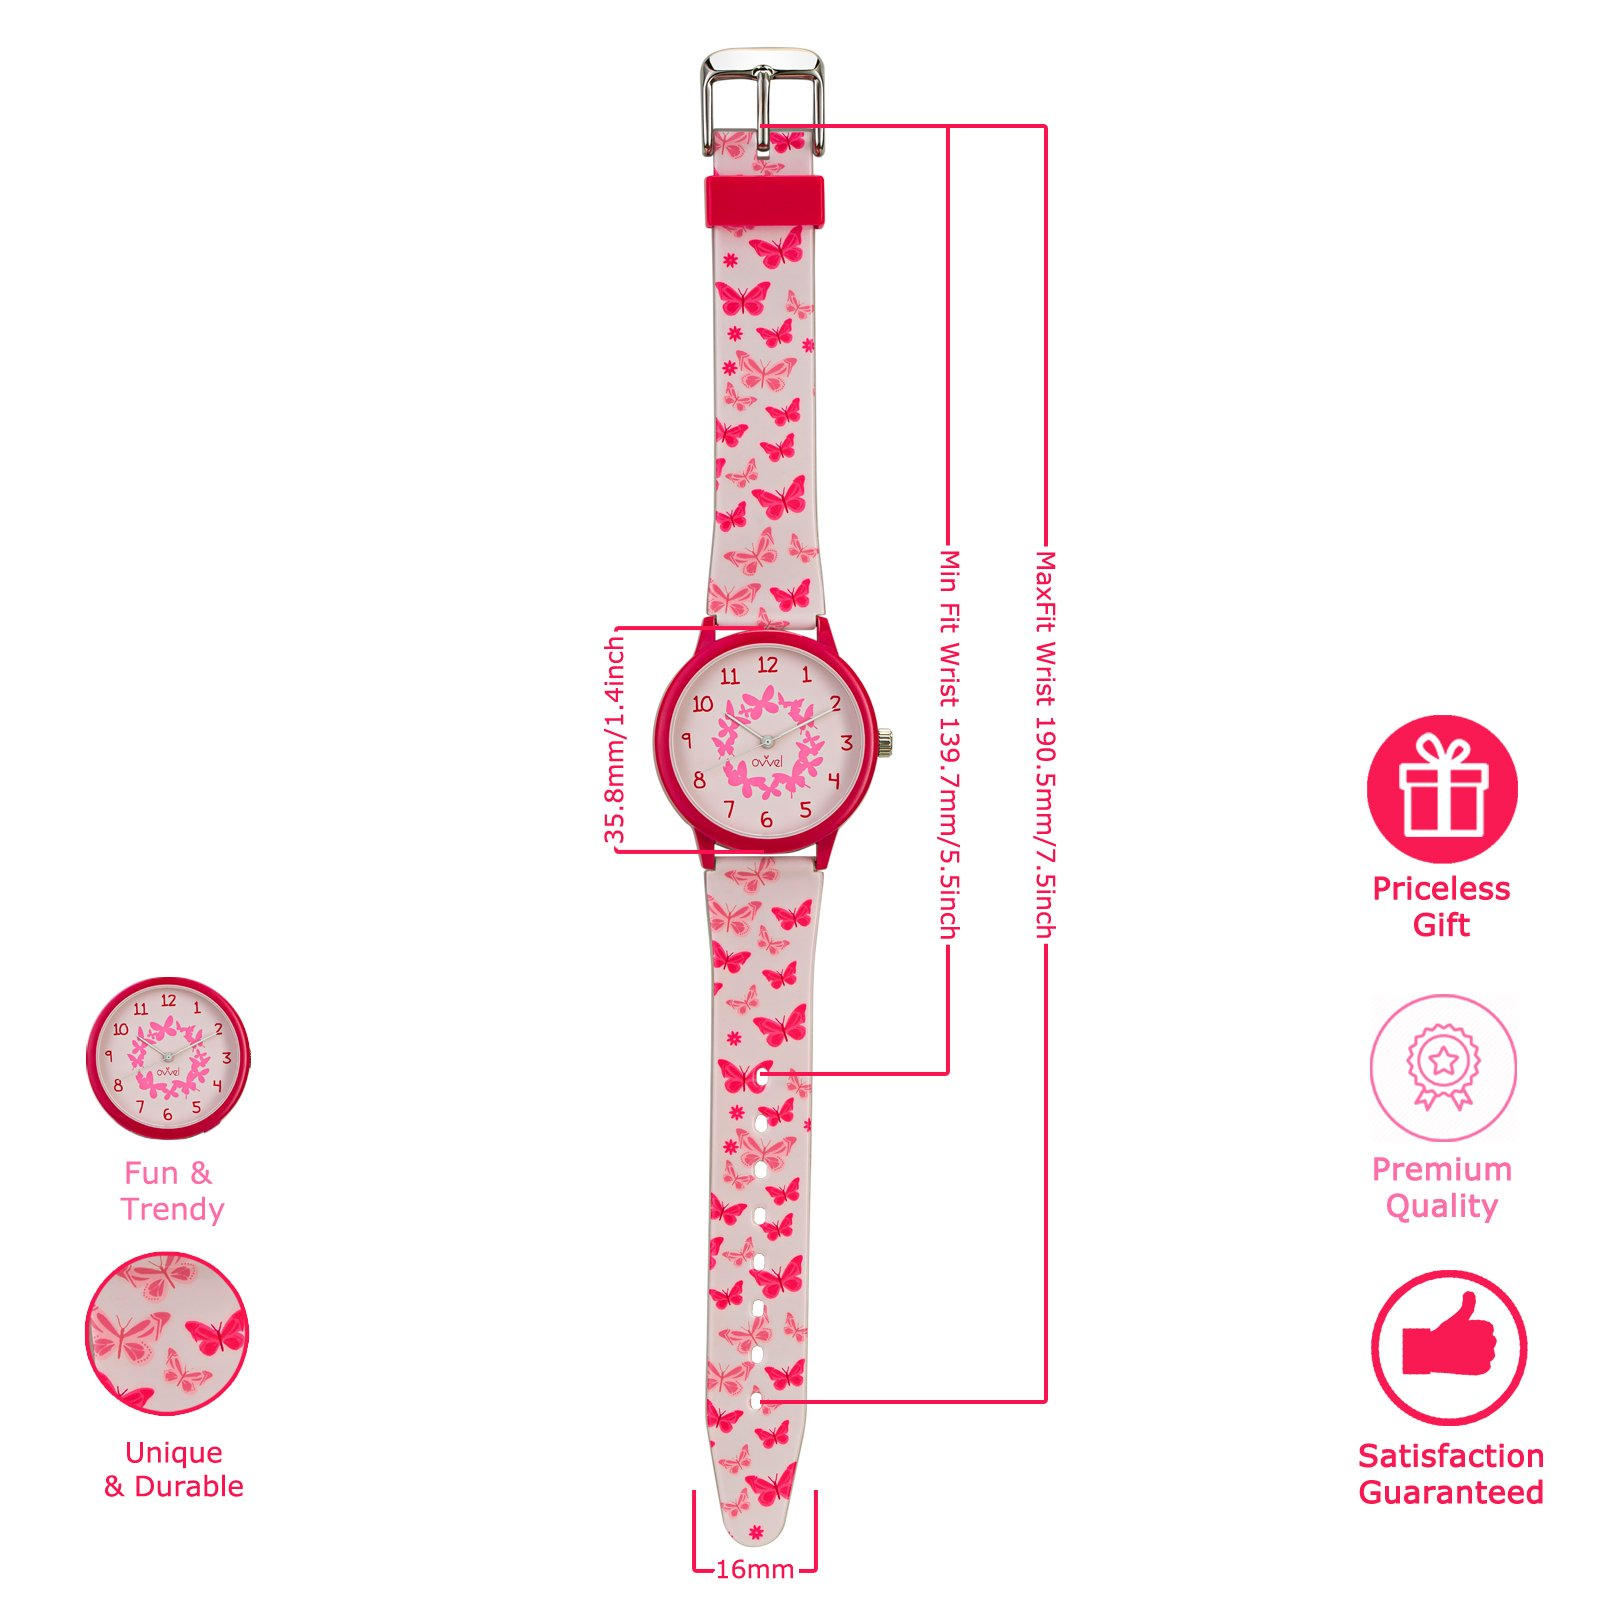 Ovvel Girls Watch - Pretty and Cute Kids Wrist with Teaching Analog Display Time Teacher - Japanese Quartz Movement - Pink Butterfly Design by Ovvel (Image #6)